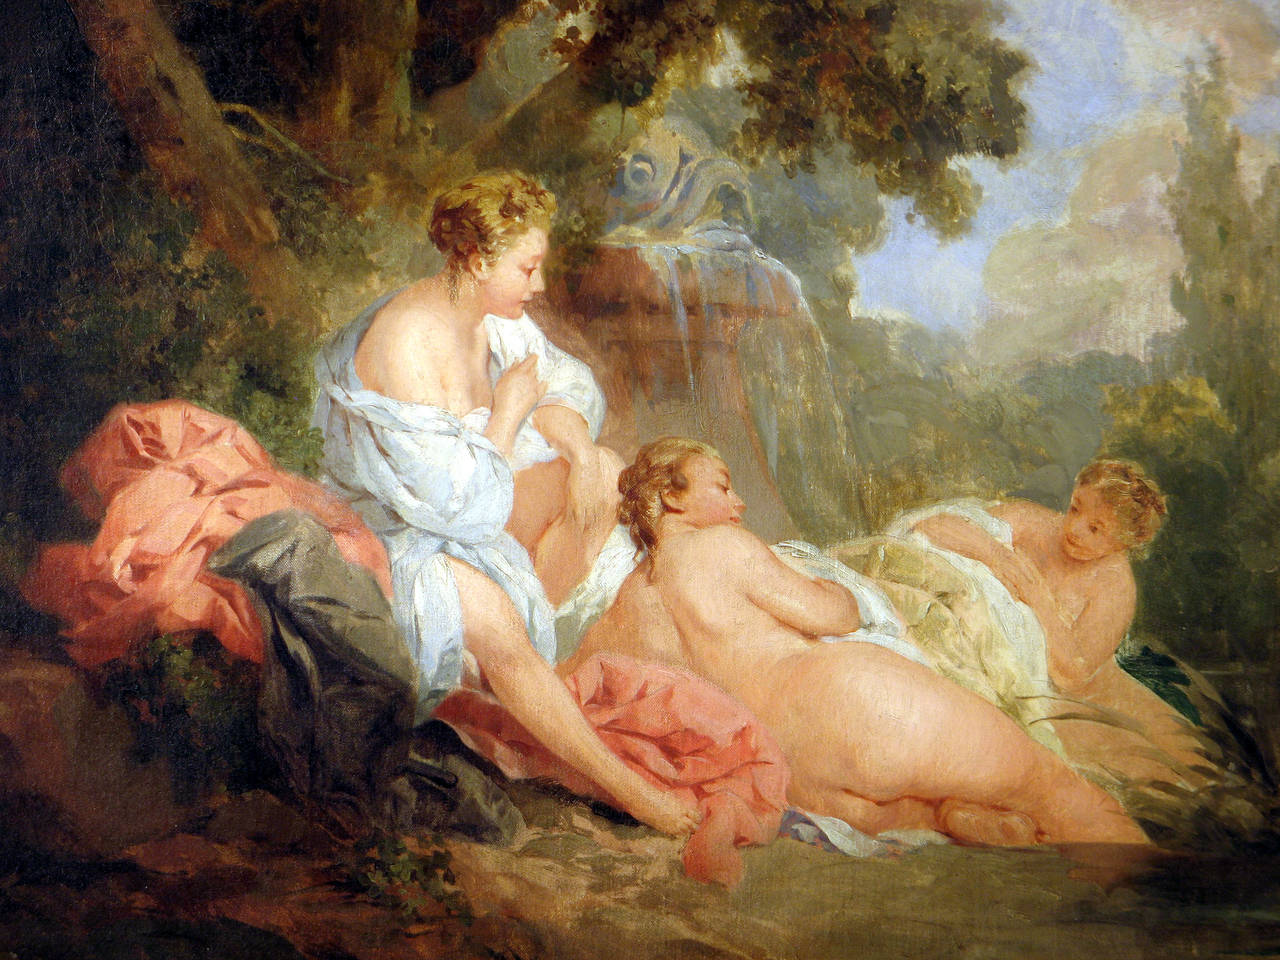 The Four Seasons: Summer - Rococo Painting by Unknown